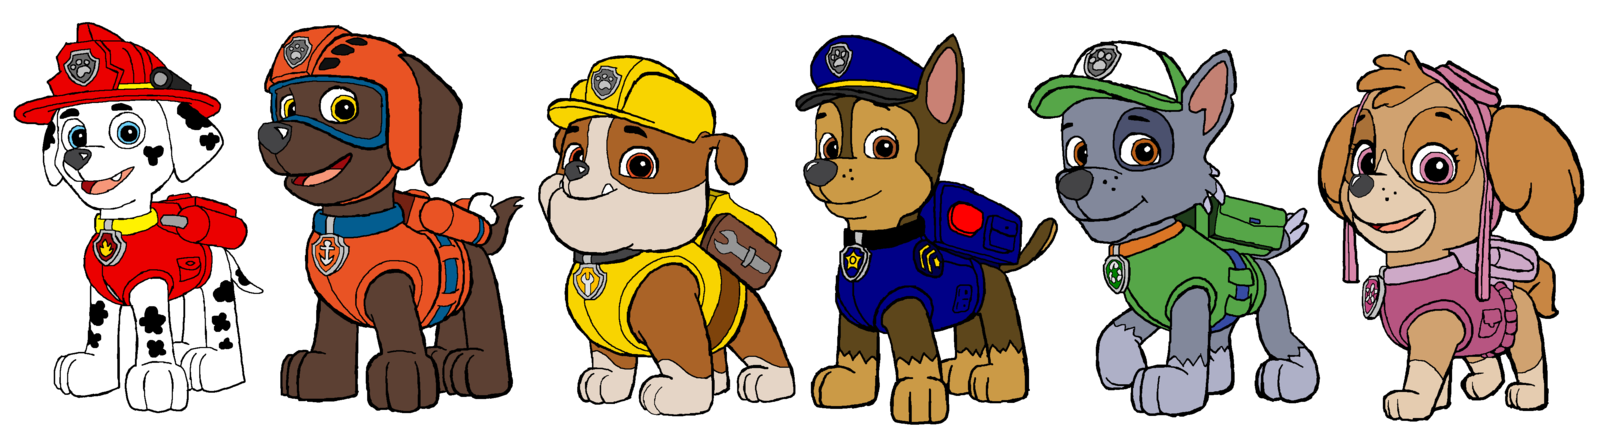 Paw patrol background clipart clip art download 45+ New Paw Patrol Wallpapers | SHunVMall clip art download